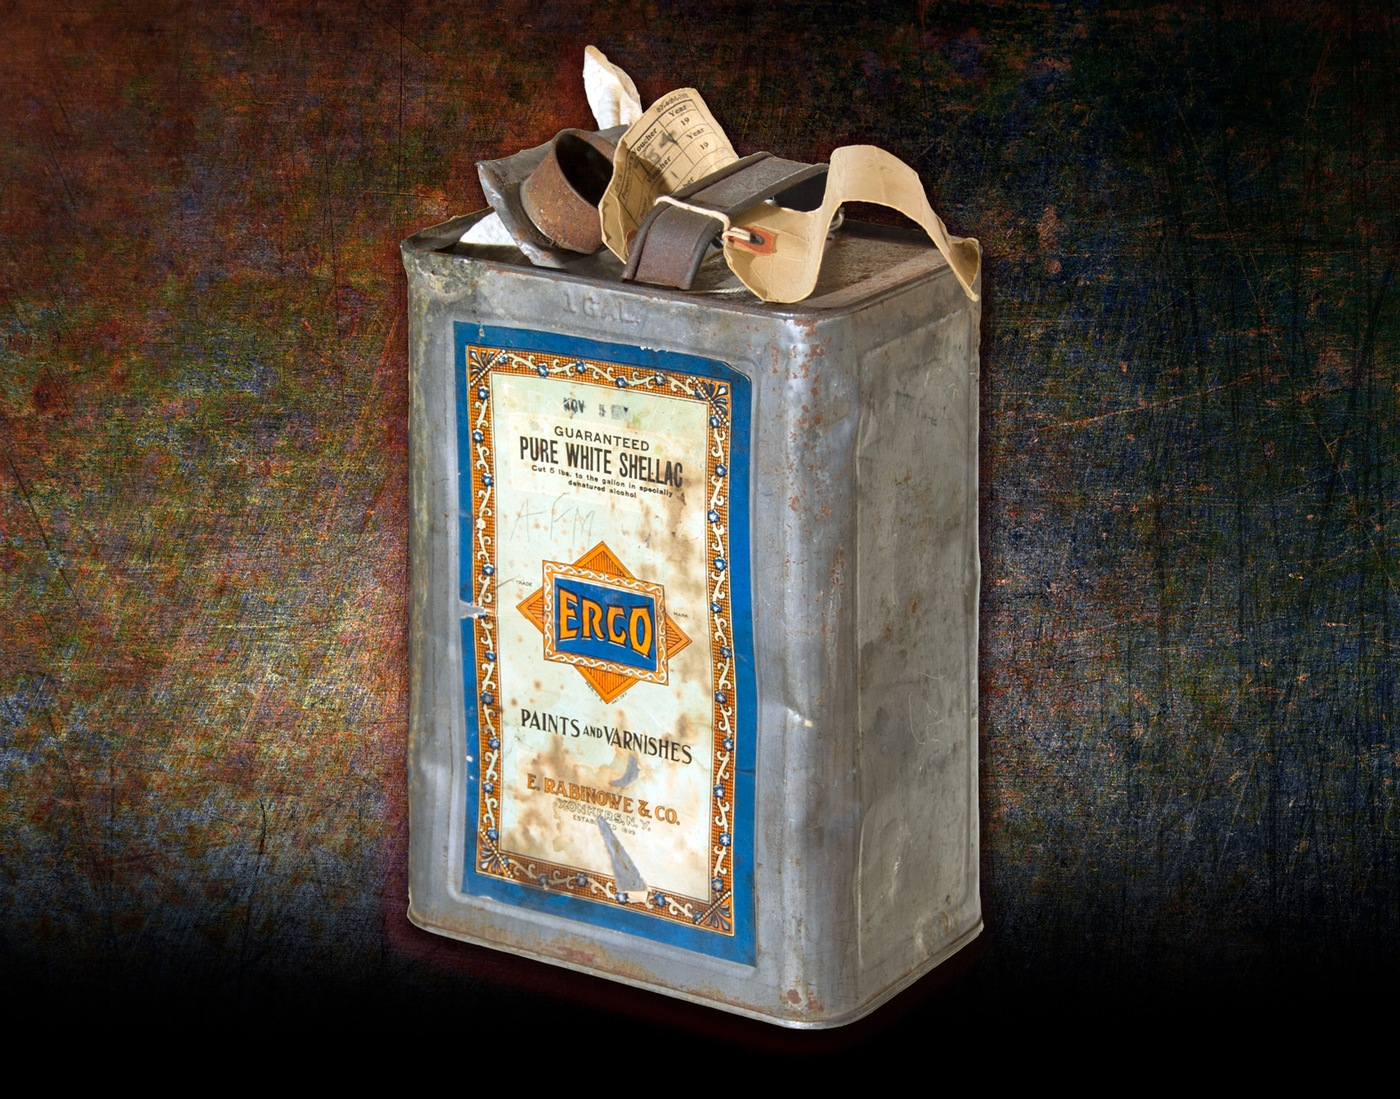 Photo of a gas can found in the garage of Bruno Richard Hauptmann. Gold certificates hidden inside the gas can tied Hauptmann to the Lindbergh kidnapping.